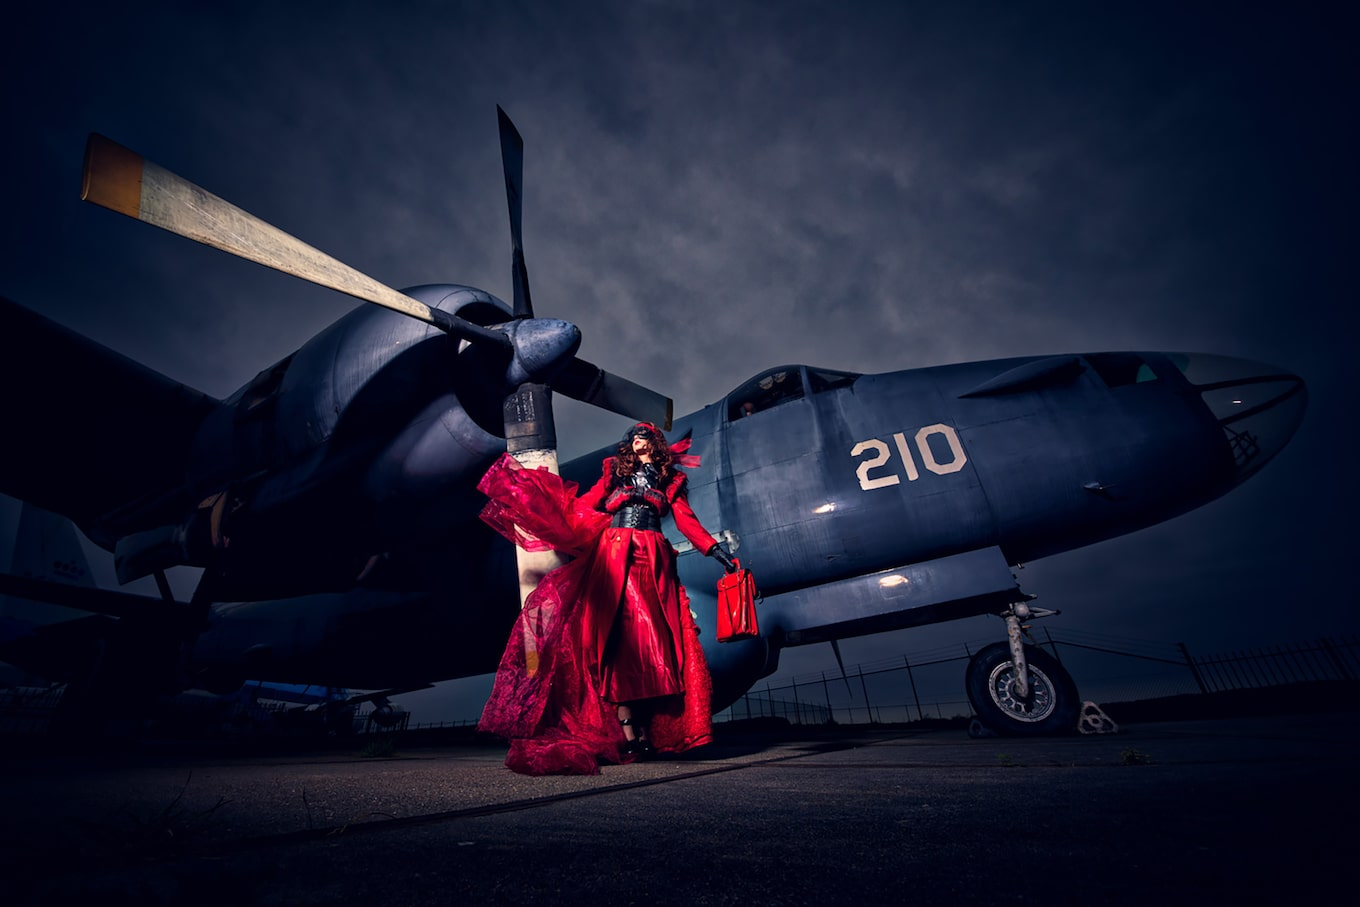 Frank-Doorhof-sony-alpha-7RII-model-wearing-red-dress-standing-in-front-of-old-aeroplane